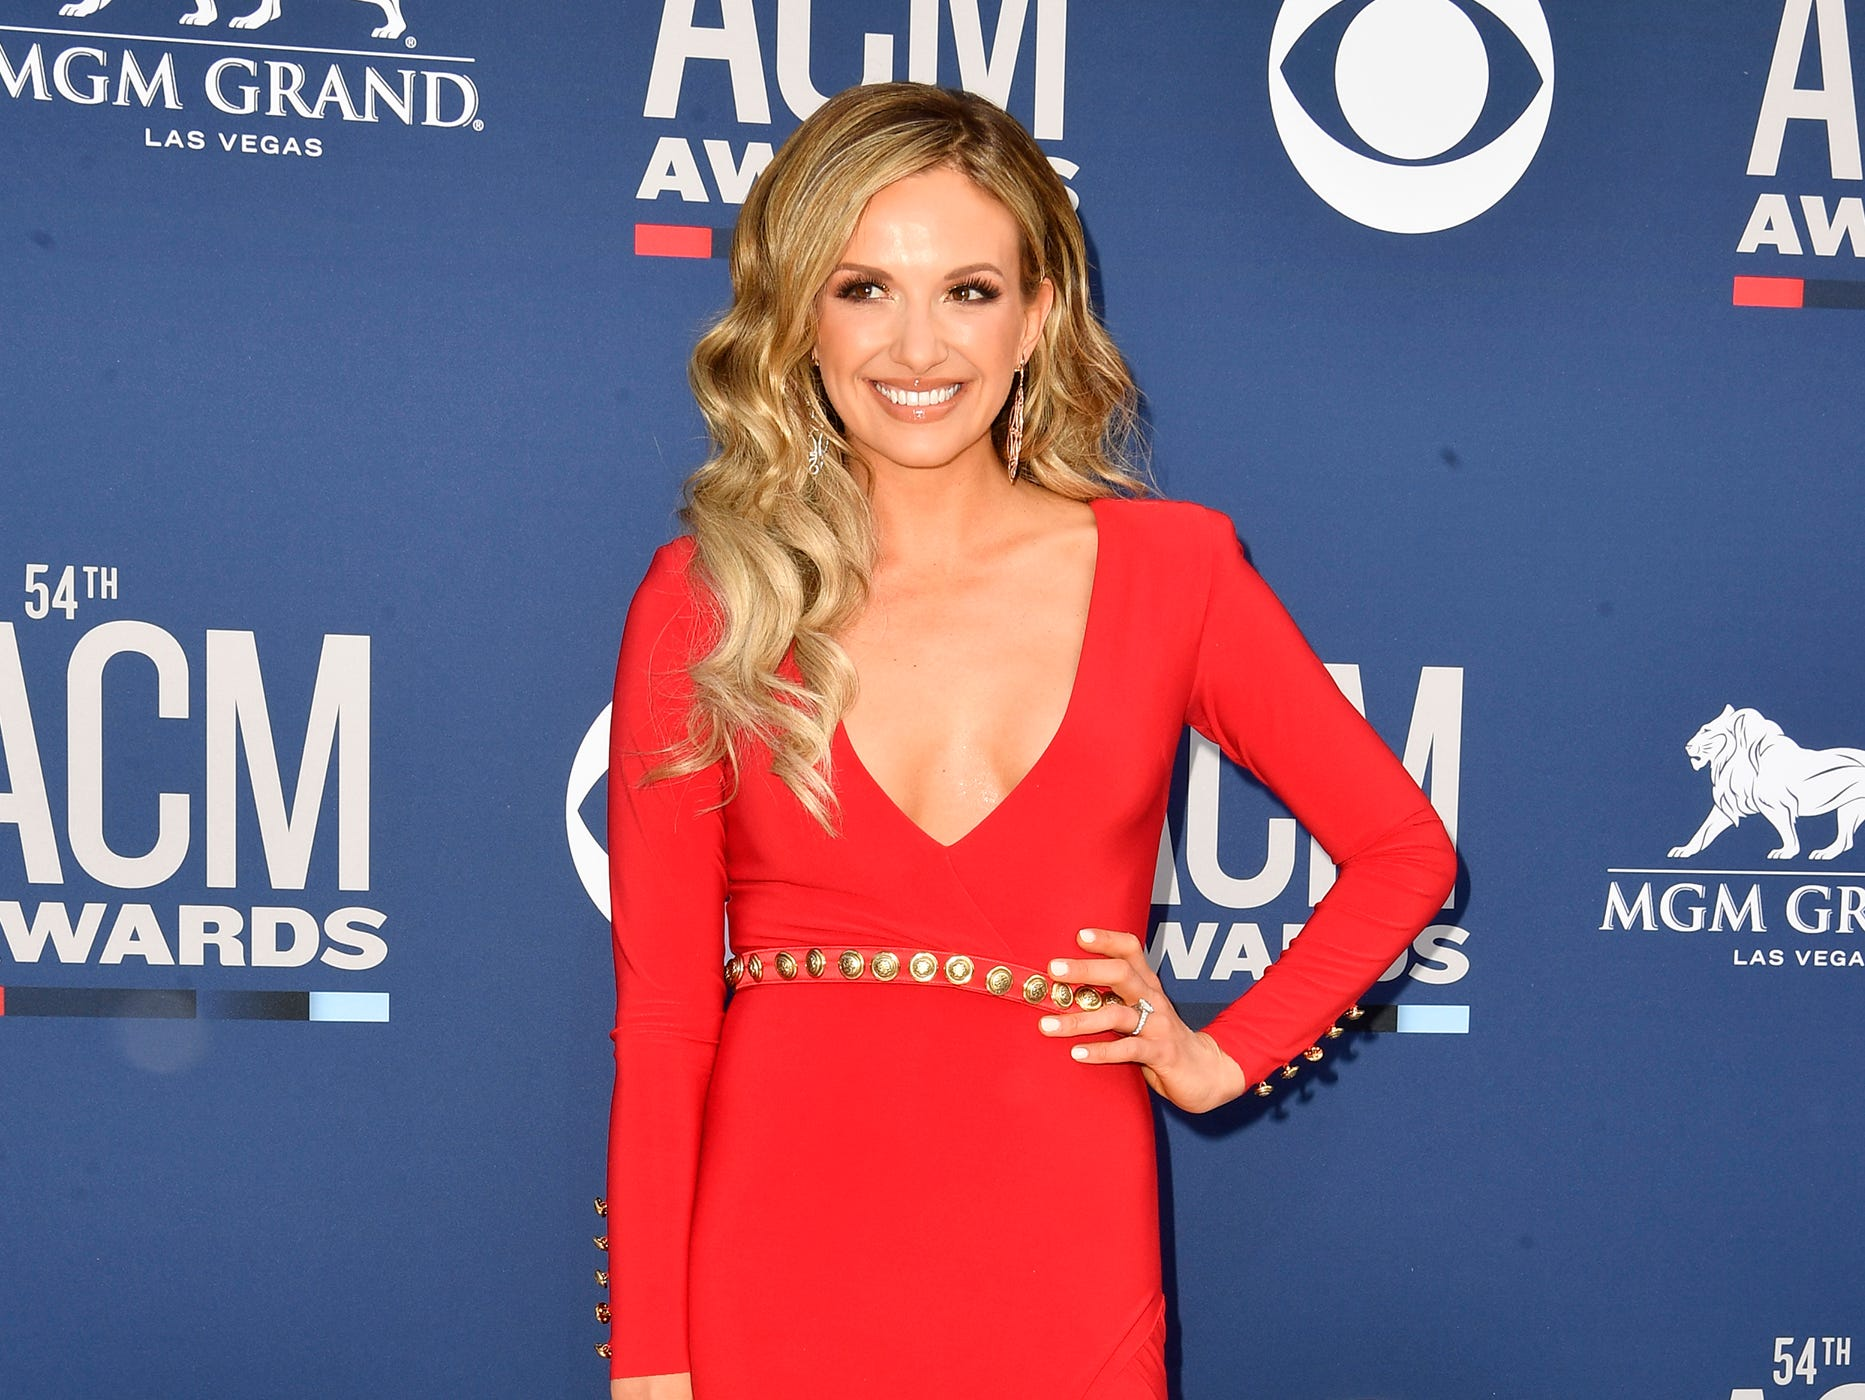 Carly Pearce walks the red carpet at the 54TH Academy of Country Music Awards Sunday, April 7, 2019, in Las Vegas, Nev.